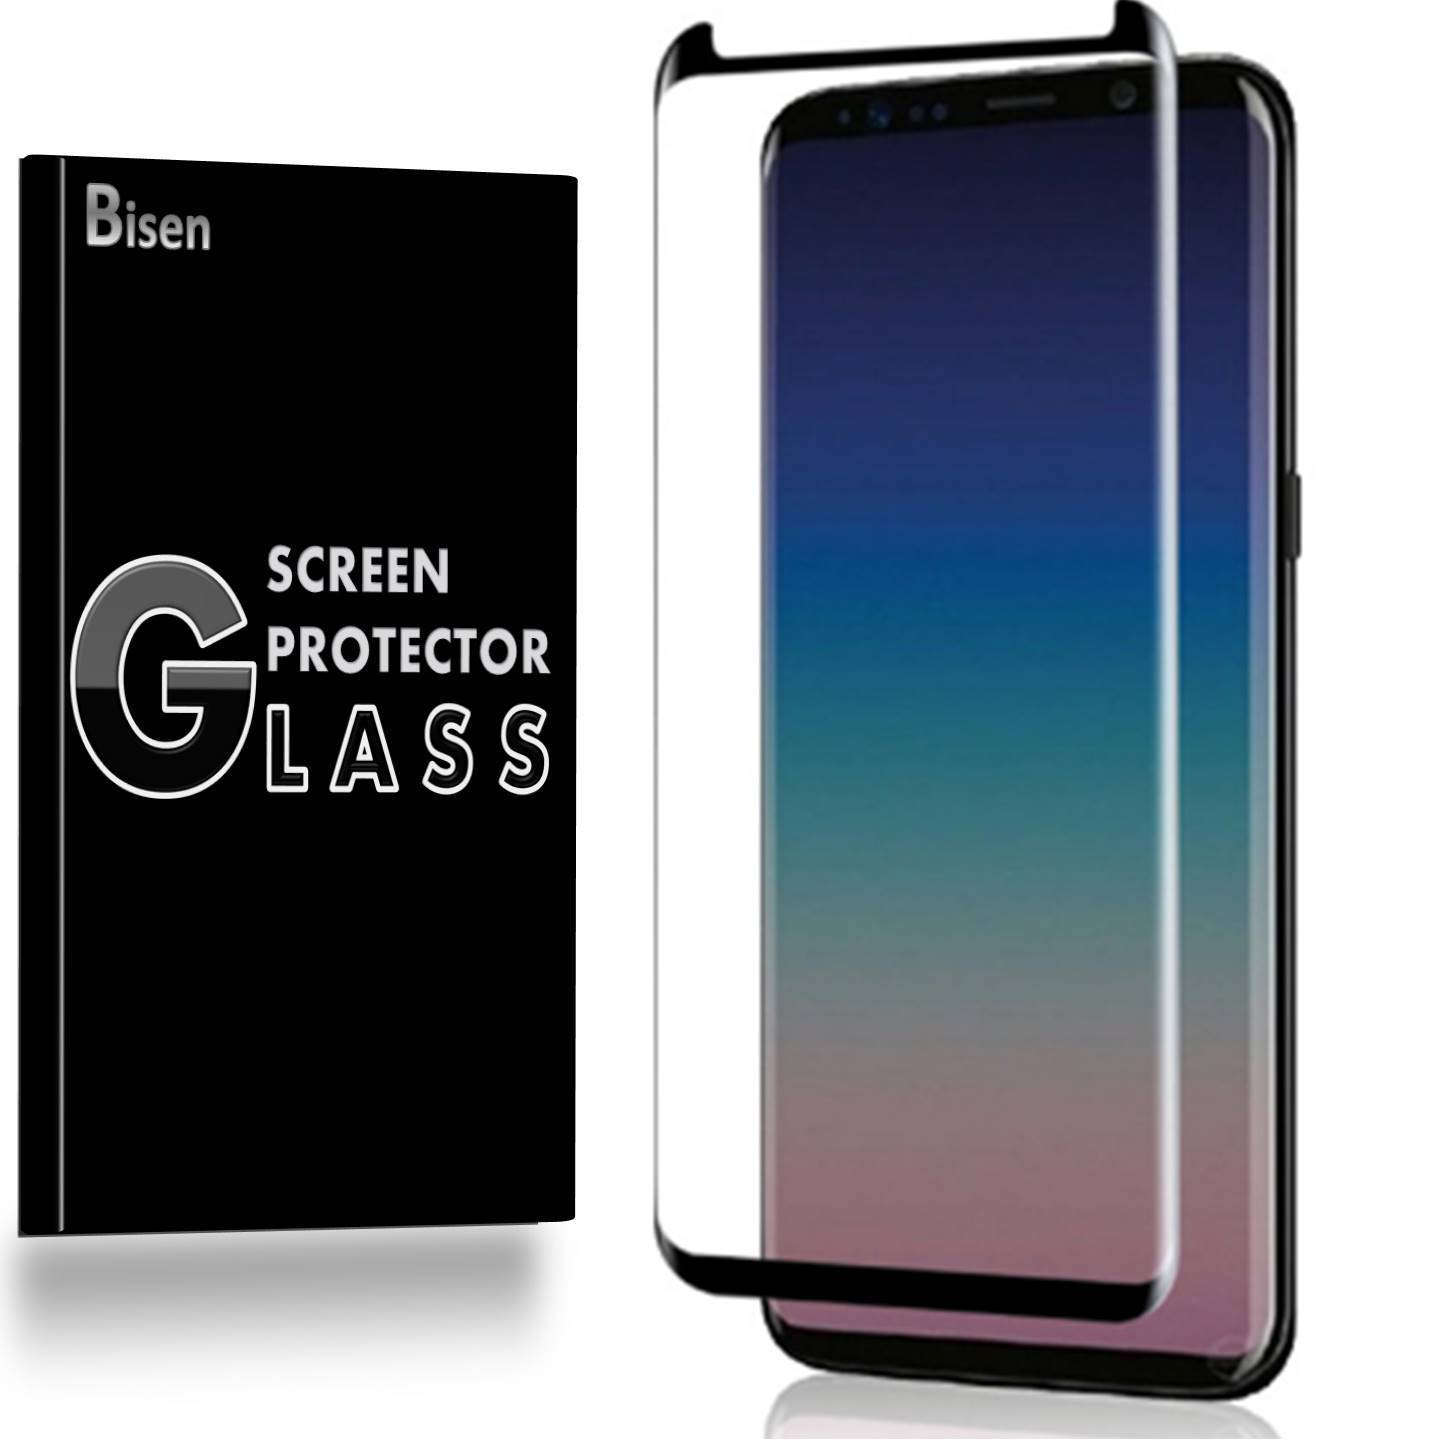 Samsung Galaxy S9+ Plus [BISEN] 3D Curved Tempered Glass Screen Protector [Full Coverage], Edge-To-Edge Protect, Anti-Scratch, Anti-Shock, Shatterproof, Bubble Free